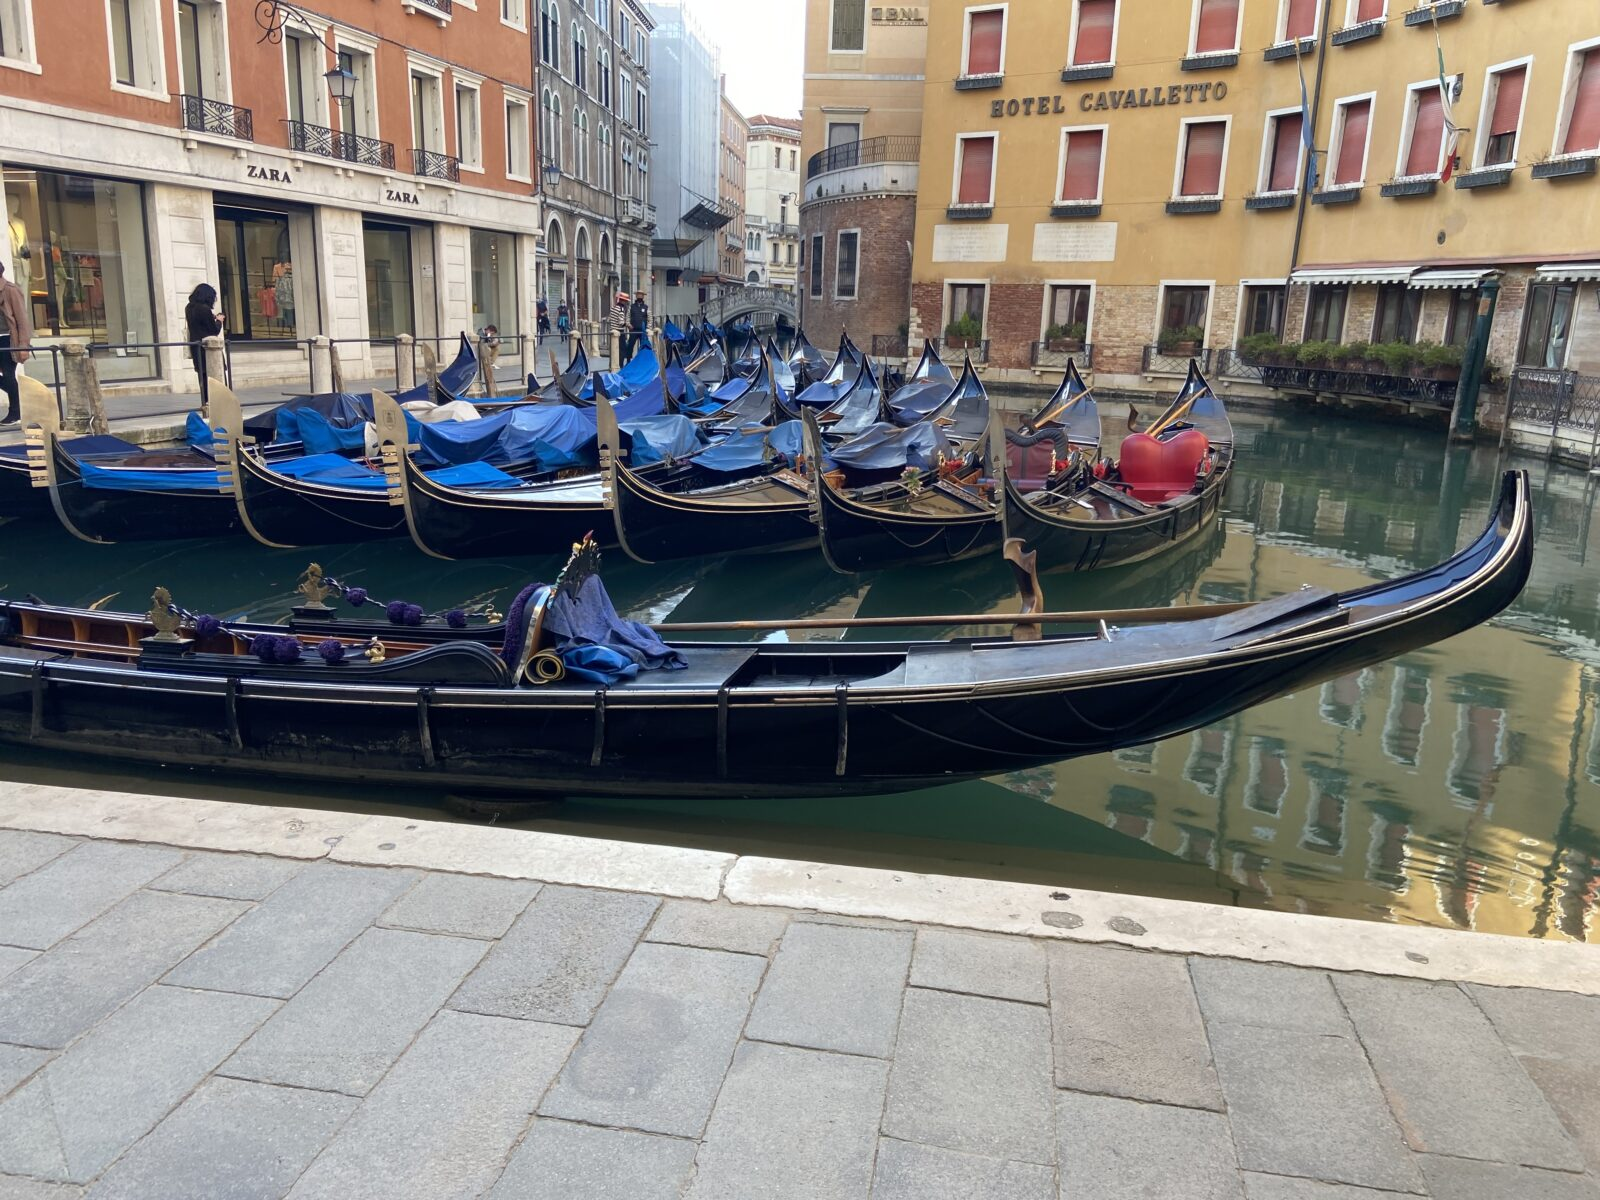 The gondola business has had a rough year.